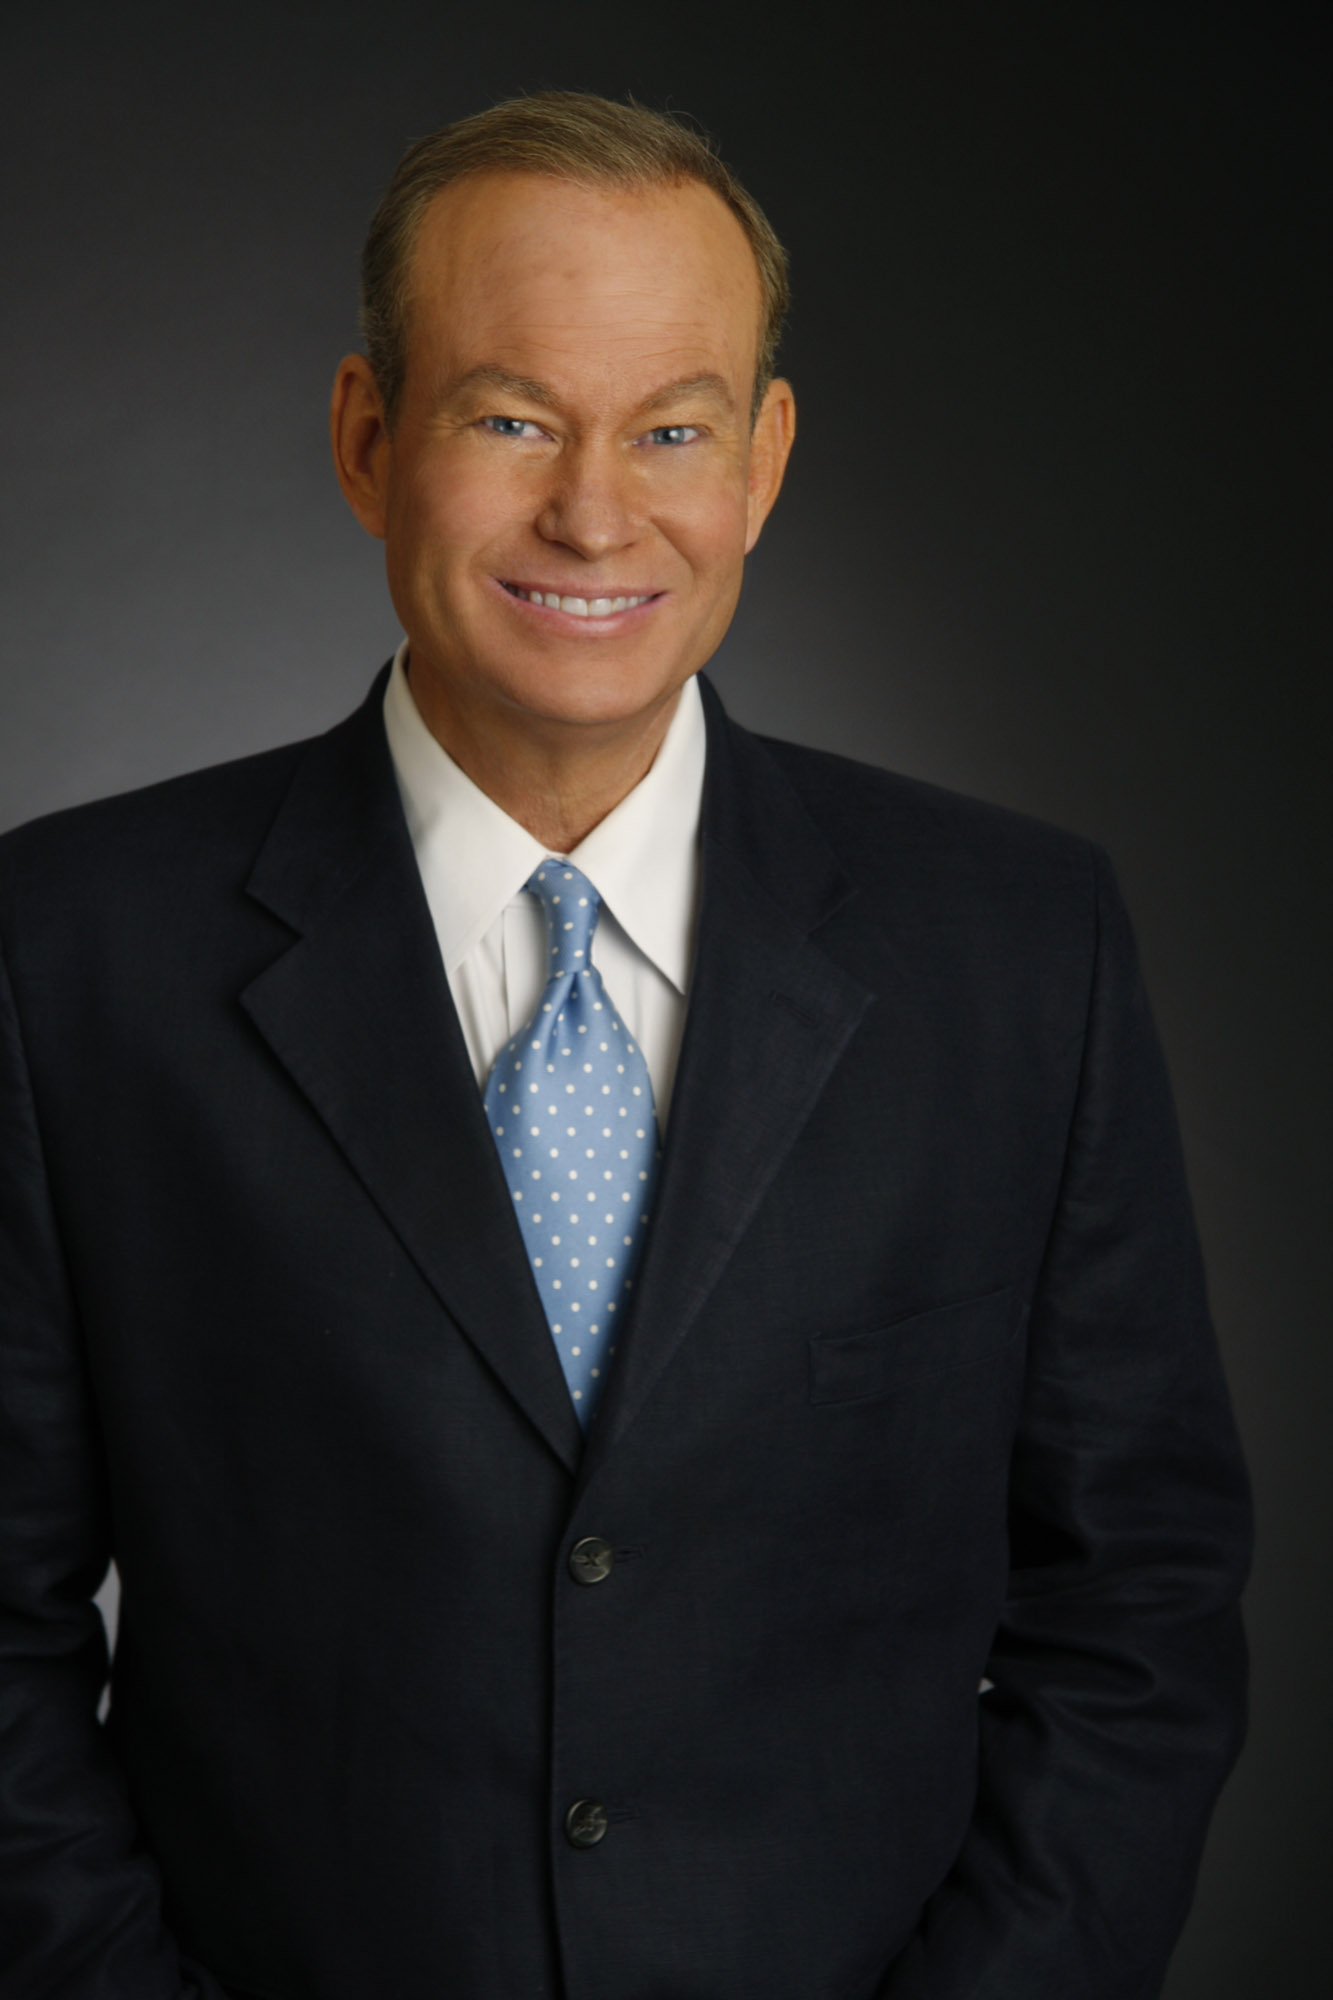 UCO will host Oklahoma City Mayor Mick Cornett at 11 a.m. April 10 in the Nigh University Center's Constitution Hall on Central's campus.